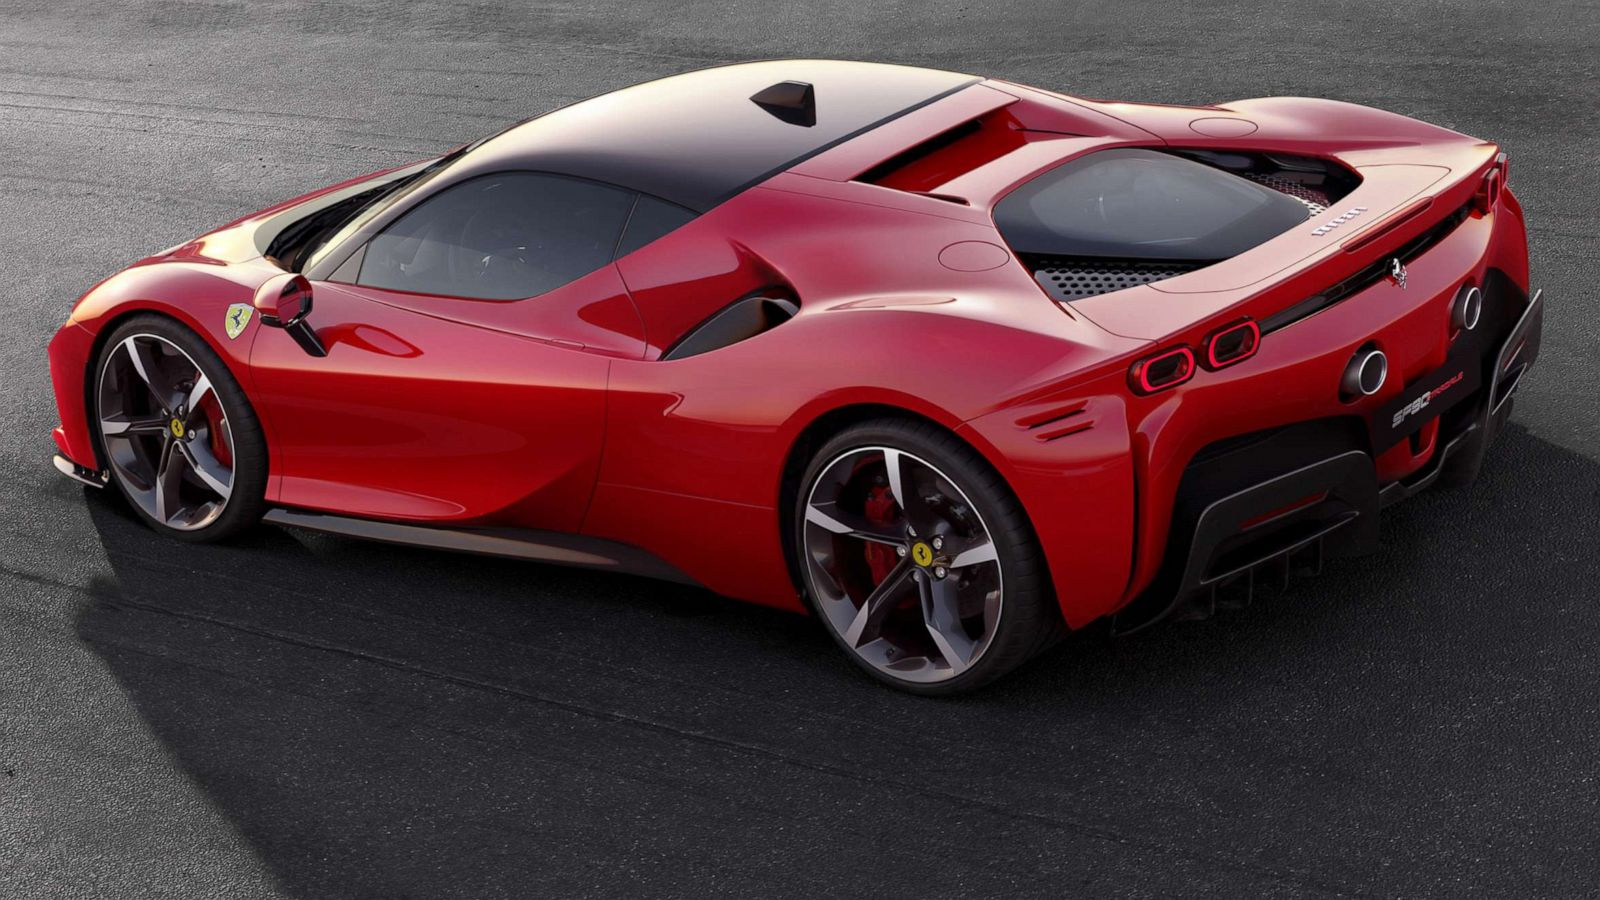 Investing In A Ferrari The Stock May Be Even Hotter Than A Car These Days Abc News